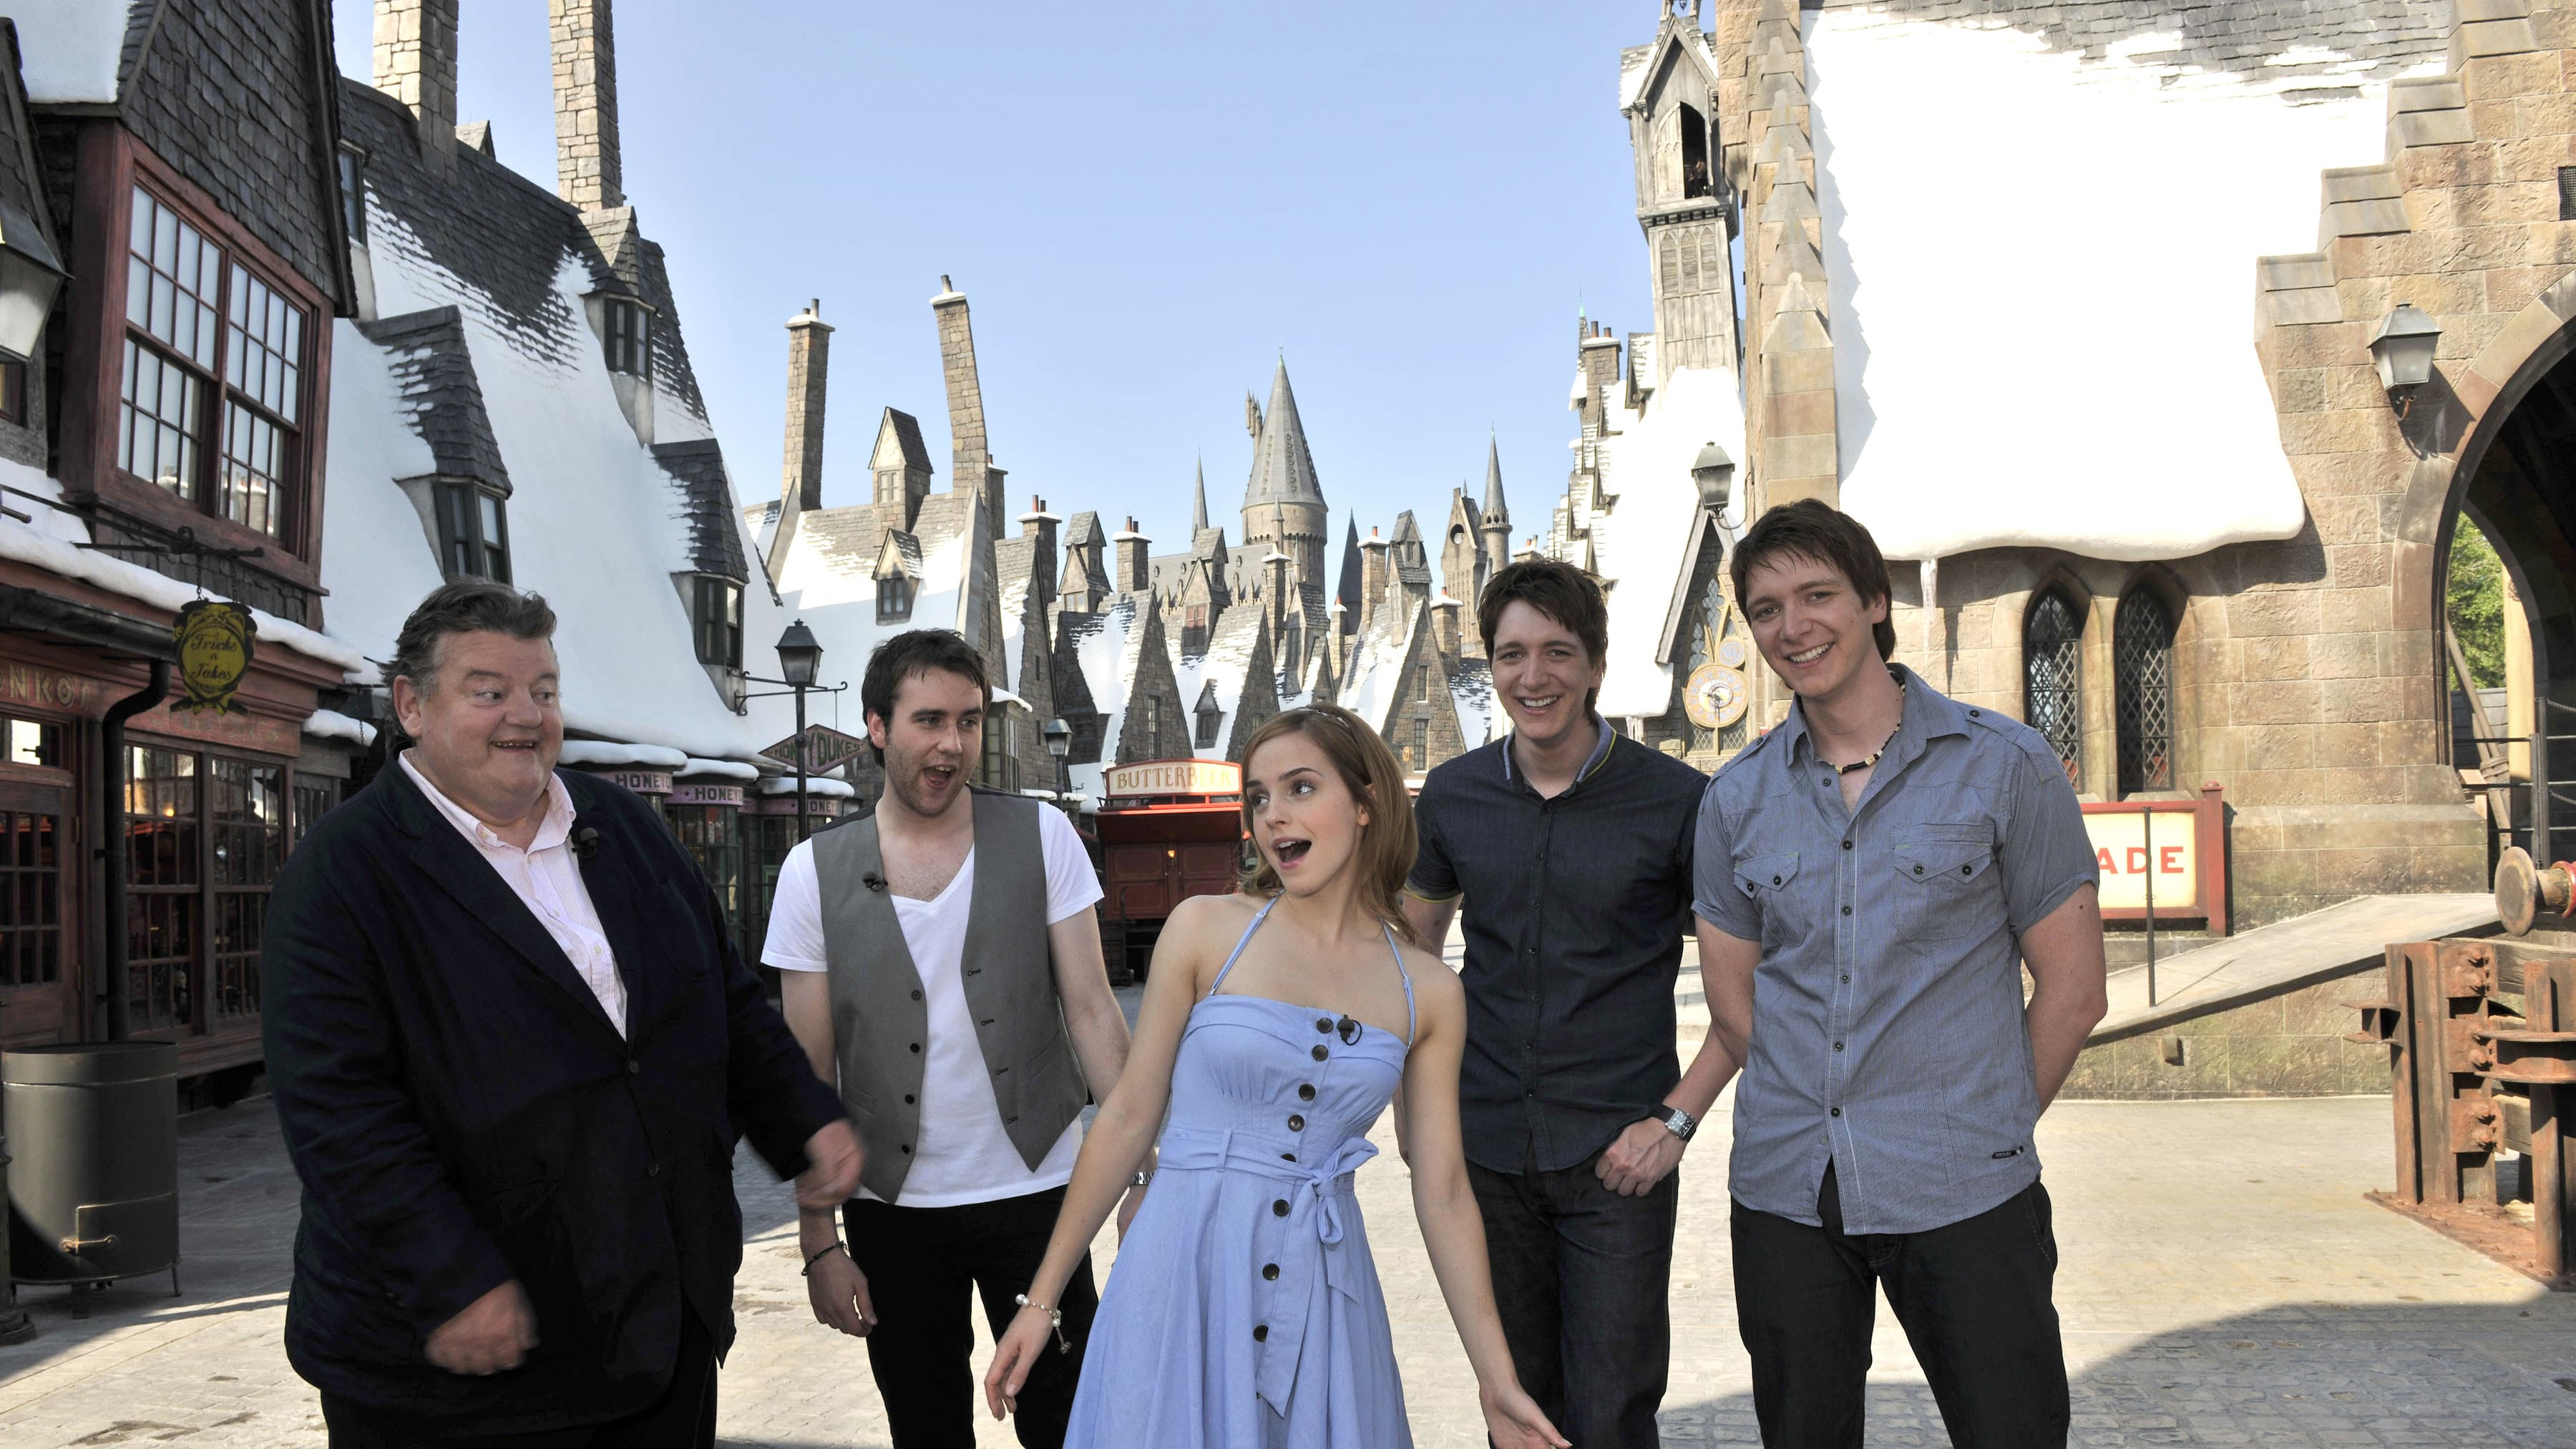 ORLANDO, FL - MAY 20: In this handout photo provided by Universal Orlando, Harry Potter film stars Robbie Coltrane, Matthew Lewis, Emma Watson, Oliver Phelps and James Phelps began their sneak peek tour of The Wizarding World of Harry Potter by entering Hogsmeade on May 20, 2010 in Orlando, Florida. The group was invited to Universal Orlando Resort for a first-look at the immersive environment, and will spend the day visiting many of the iconic locations made famous in the popular Harry Potter series. The Wizarding World of Harry Potter at Universal Orlando Resort grand opens on June 18. (Photo by Kevin Kolczynski/Universal Orlando via Getty Images)